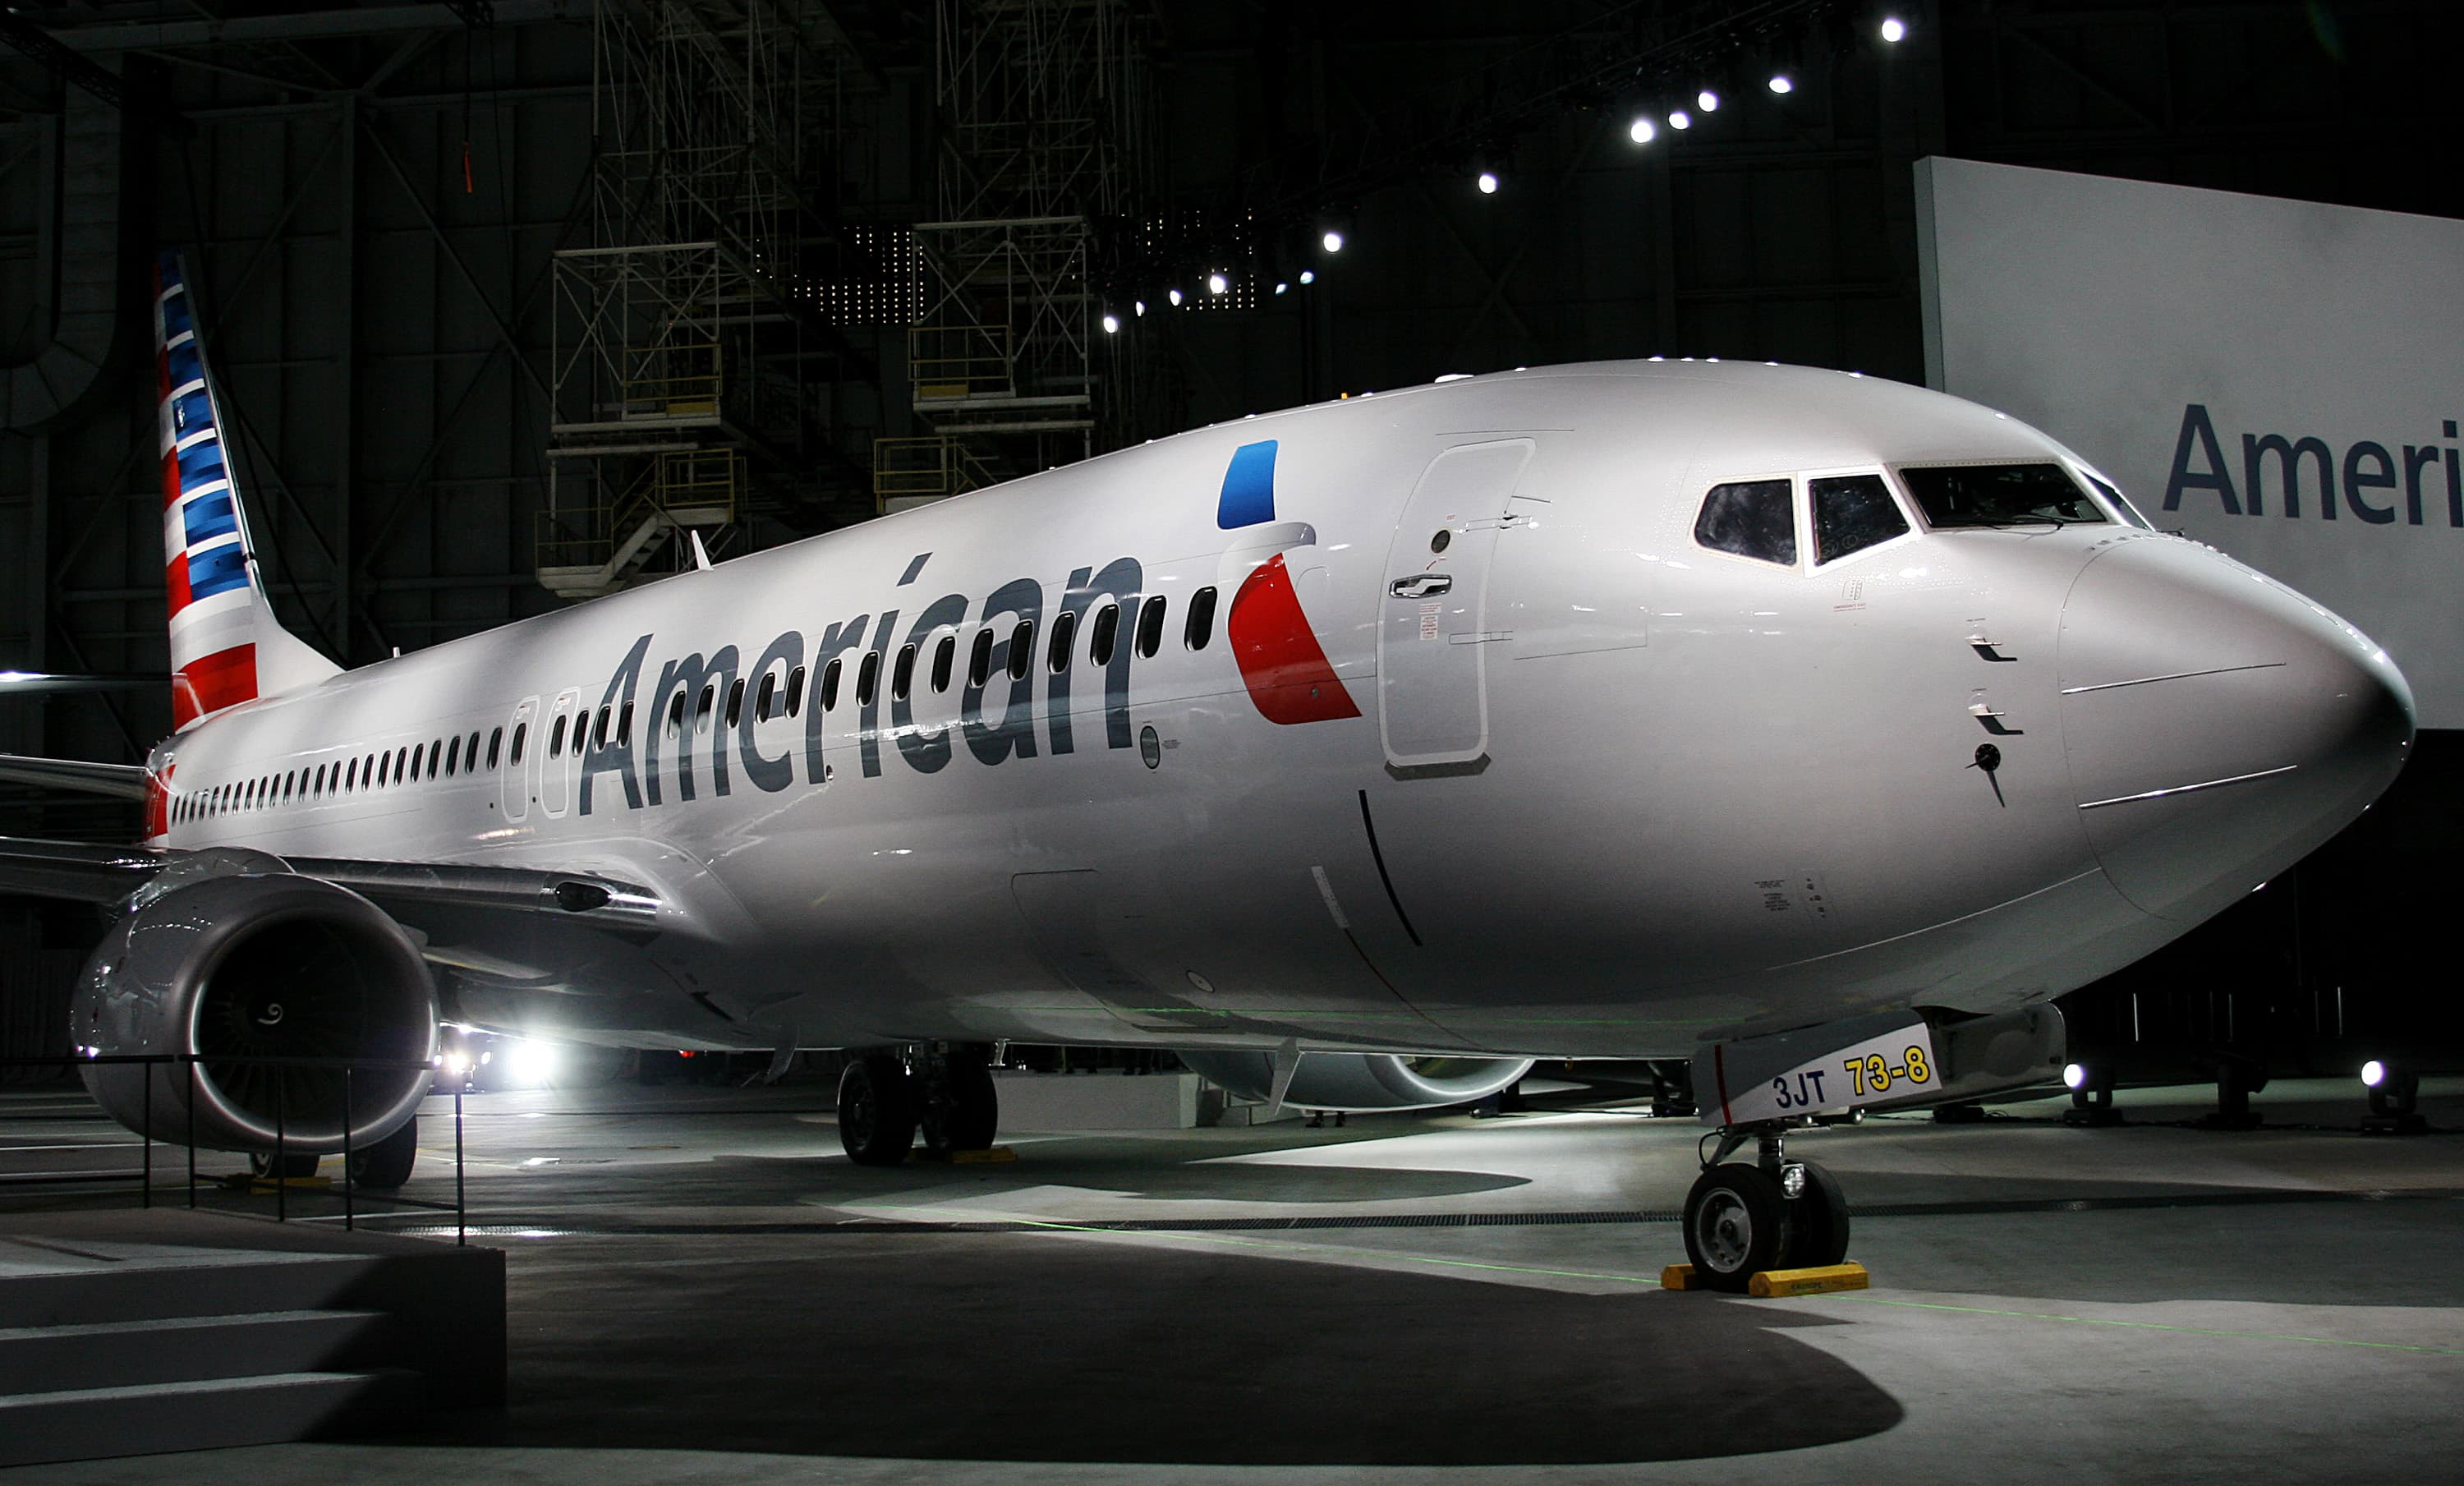 American Airlines mechanic charged with sabotaging a plane